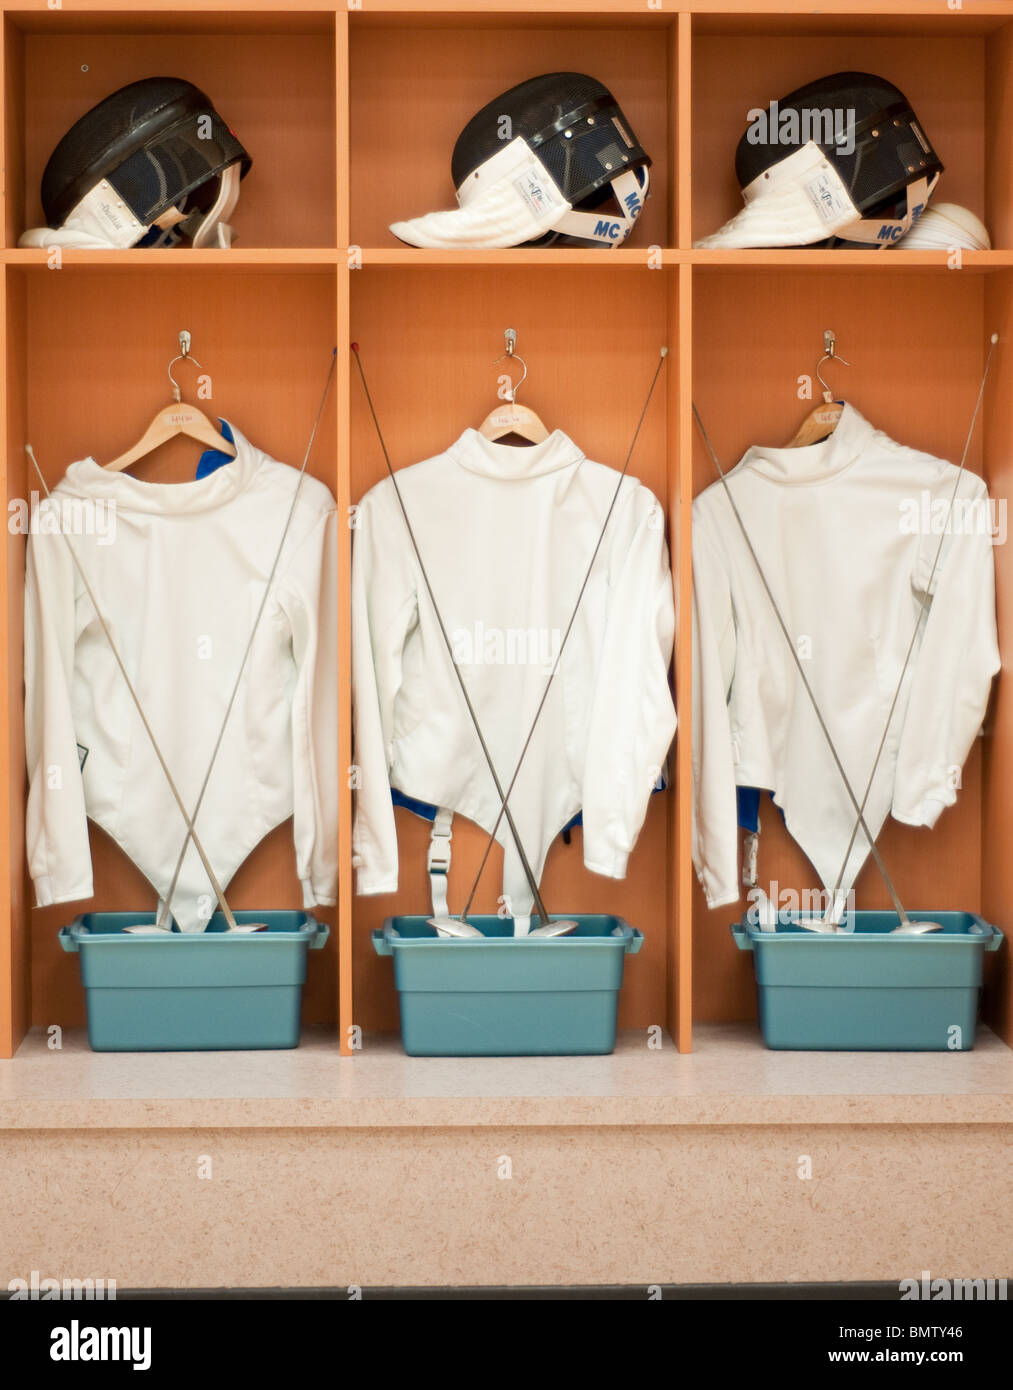 Fencing outfit and sword Stock Photo: 30051622 - Alamy